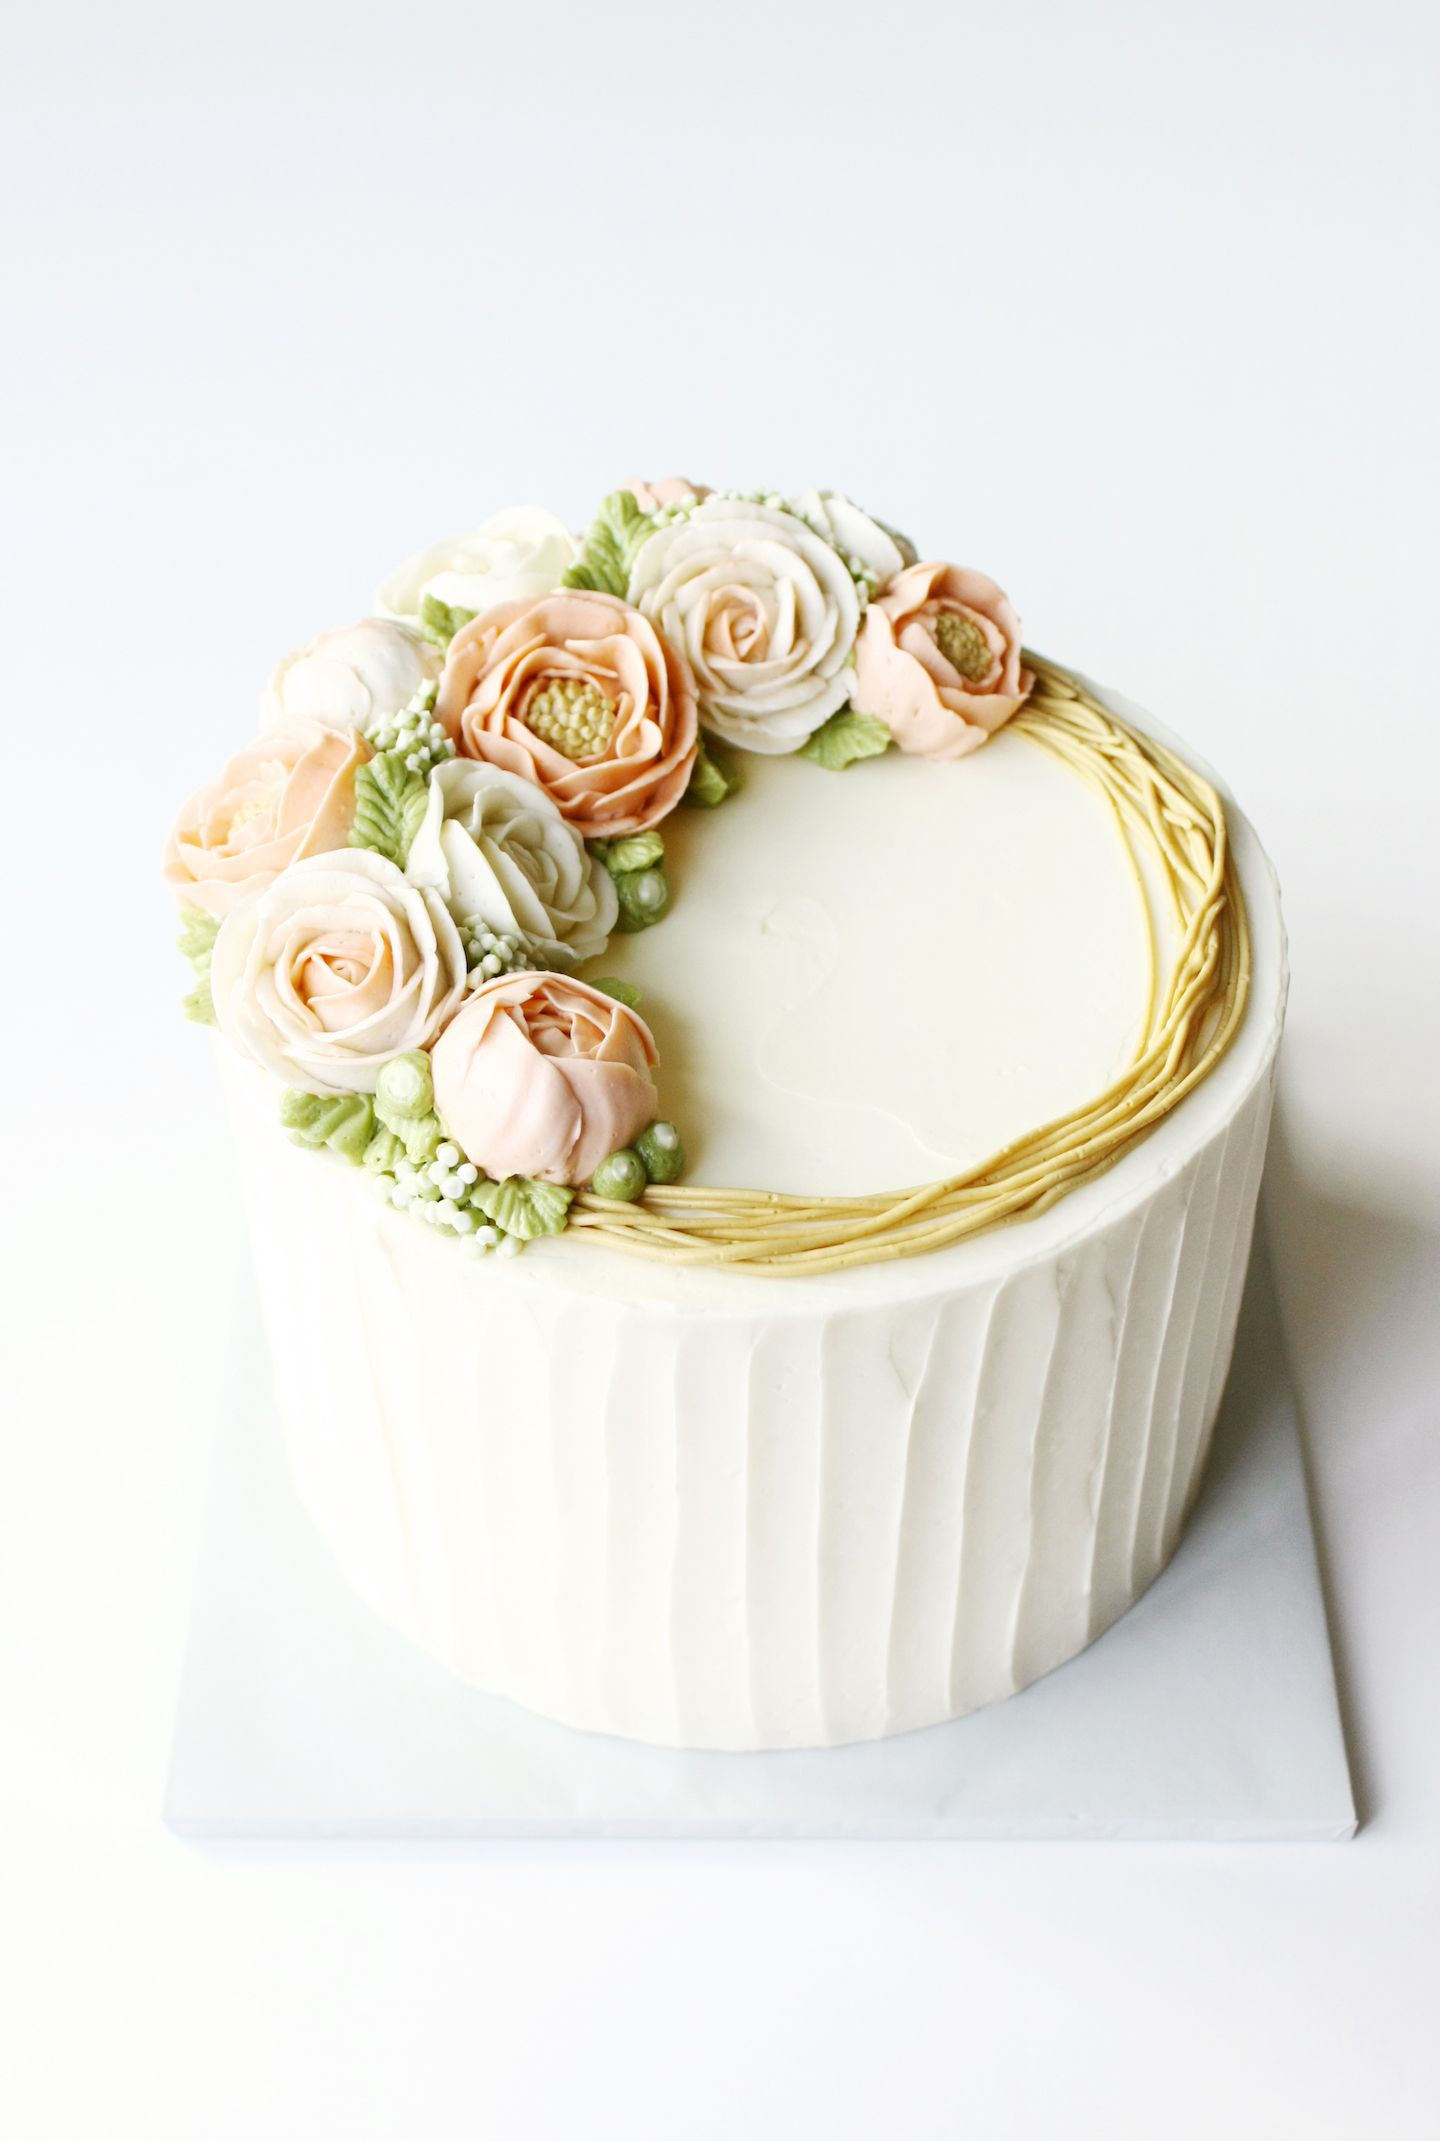 Cake Trends Blooming Buttercream Cake Decorating Buttercream Cake Butter Cream